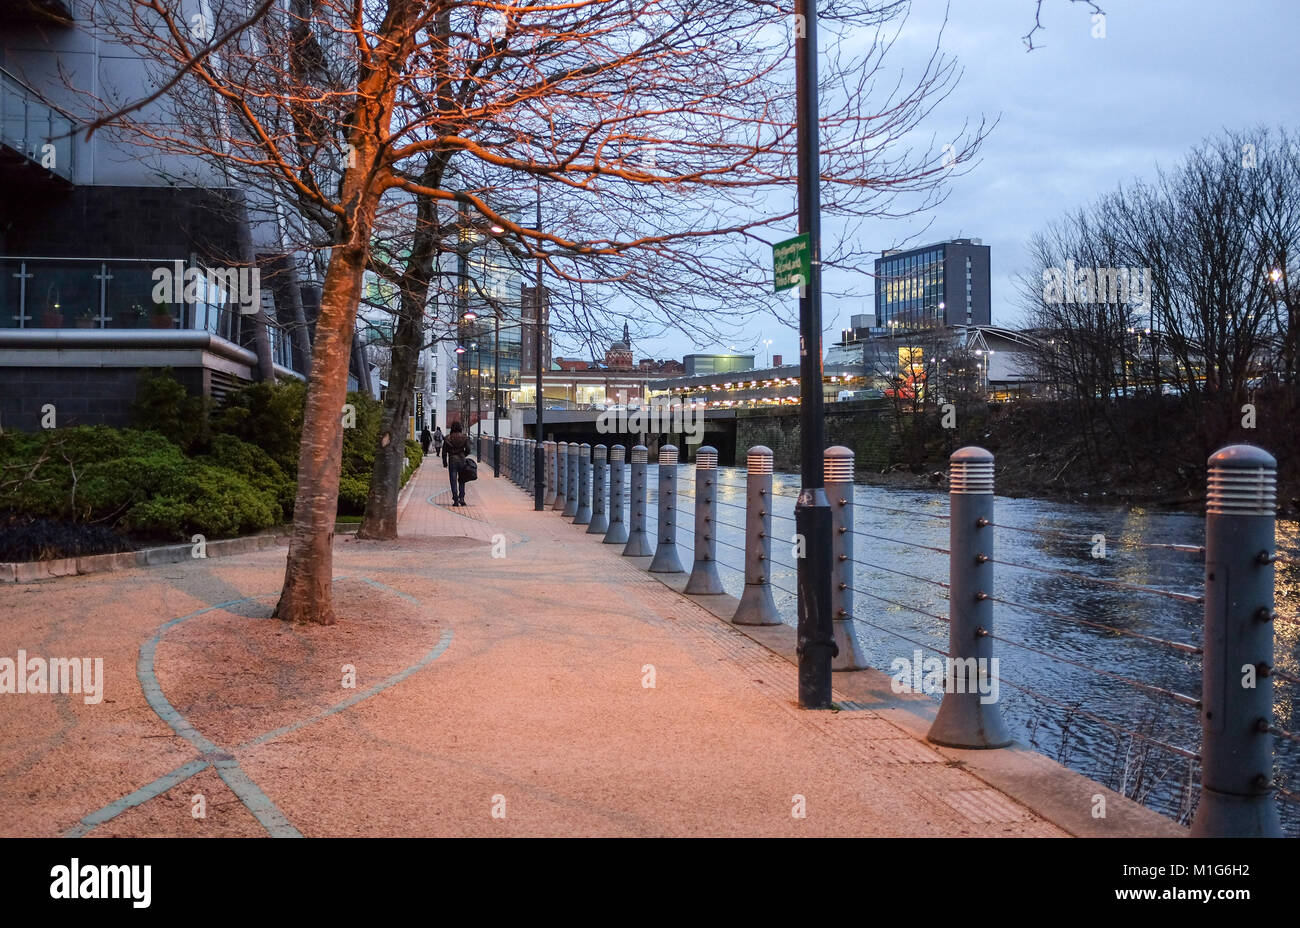 Leeds Yorkshire UK - The new Riverside district with shops restaurants and offices - Stock Image